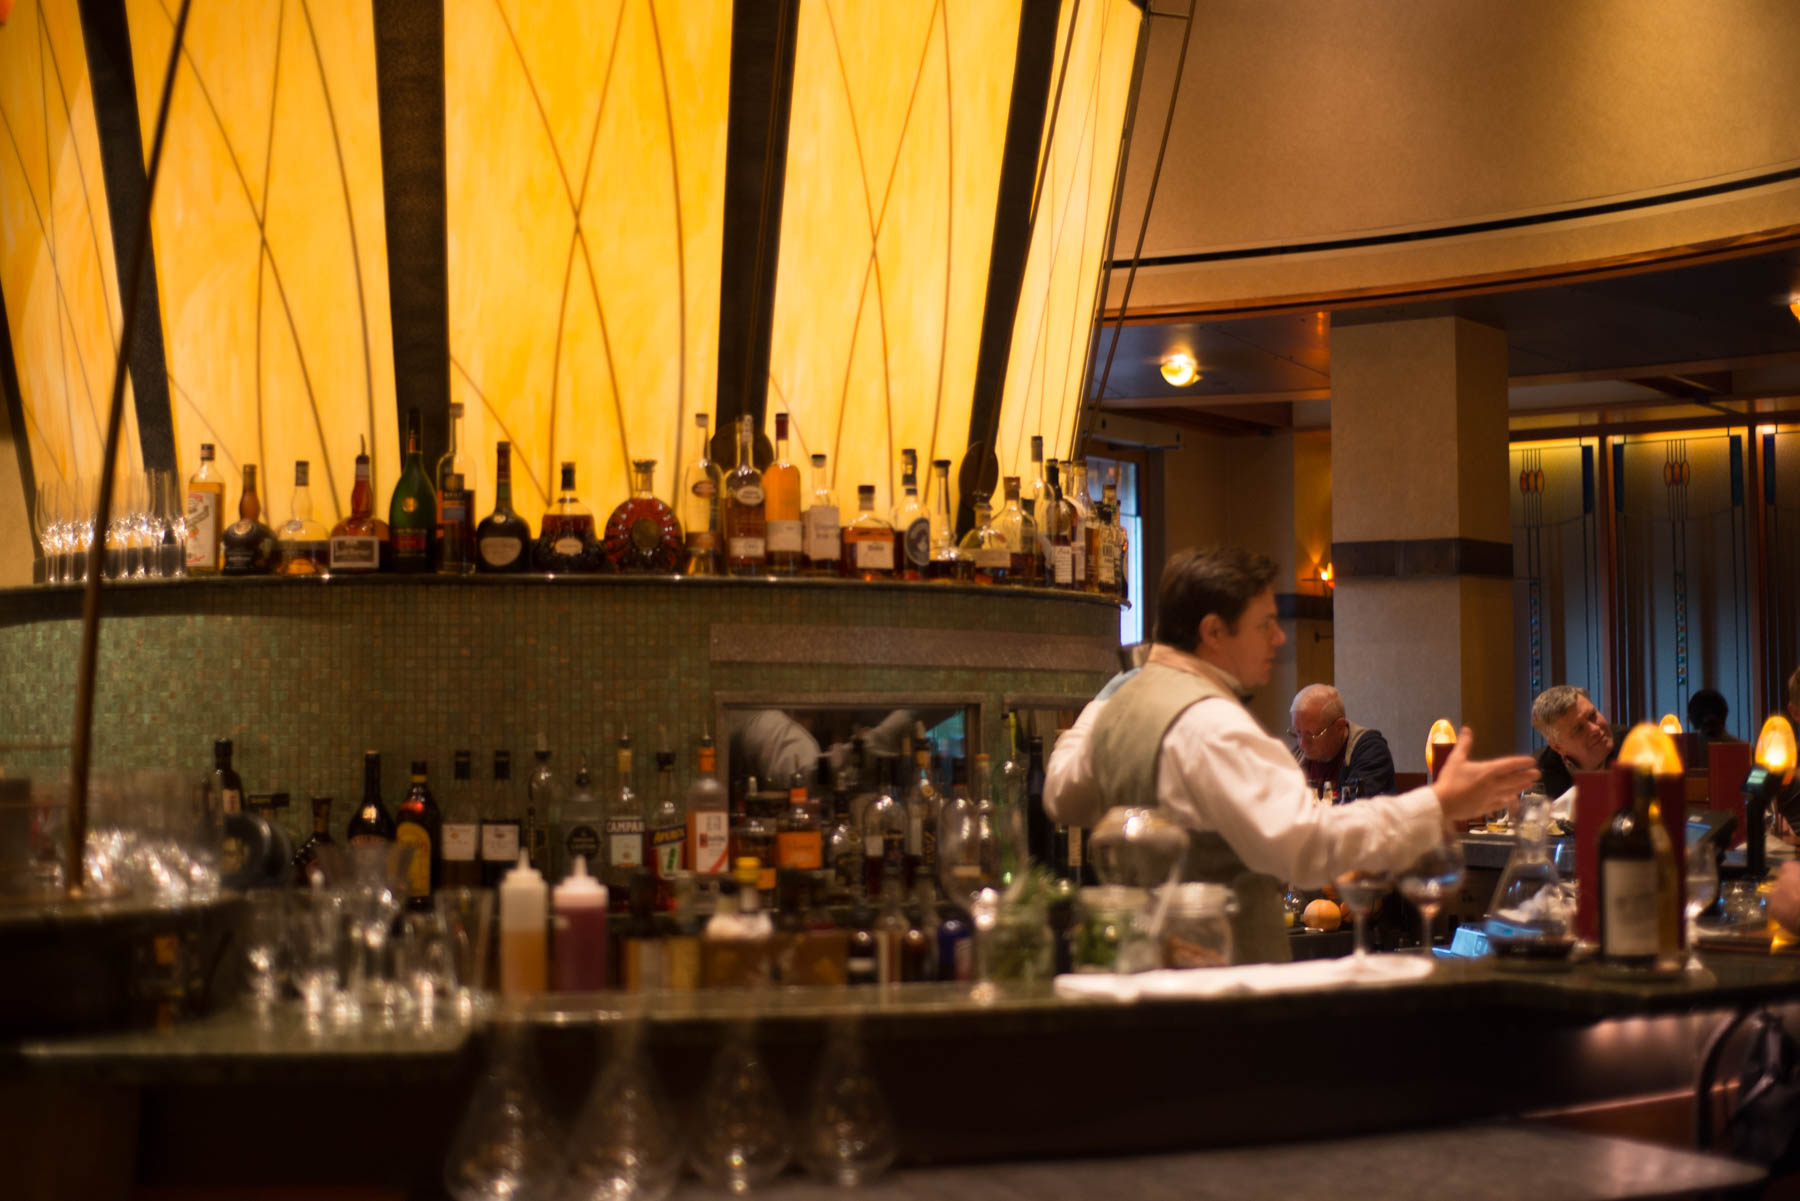 Napa Rose Lounge and Restaurant at the Grand Californian - Disneyland Activities for Adults